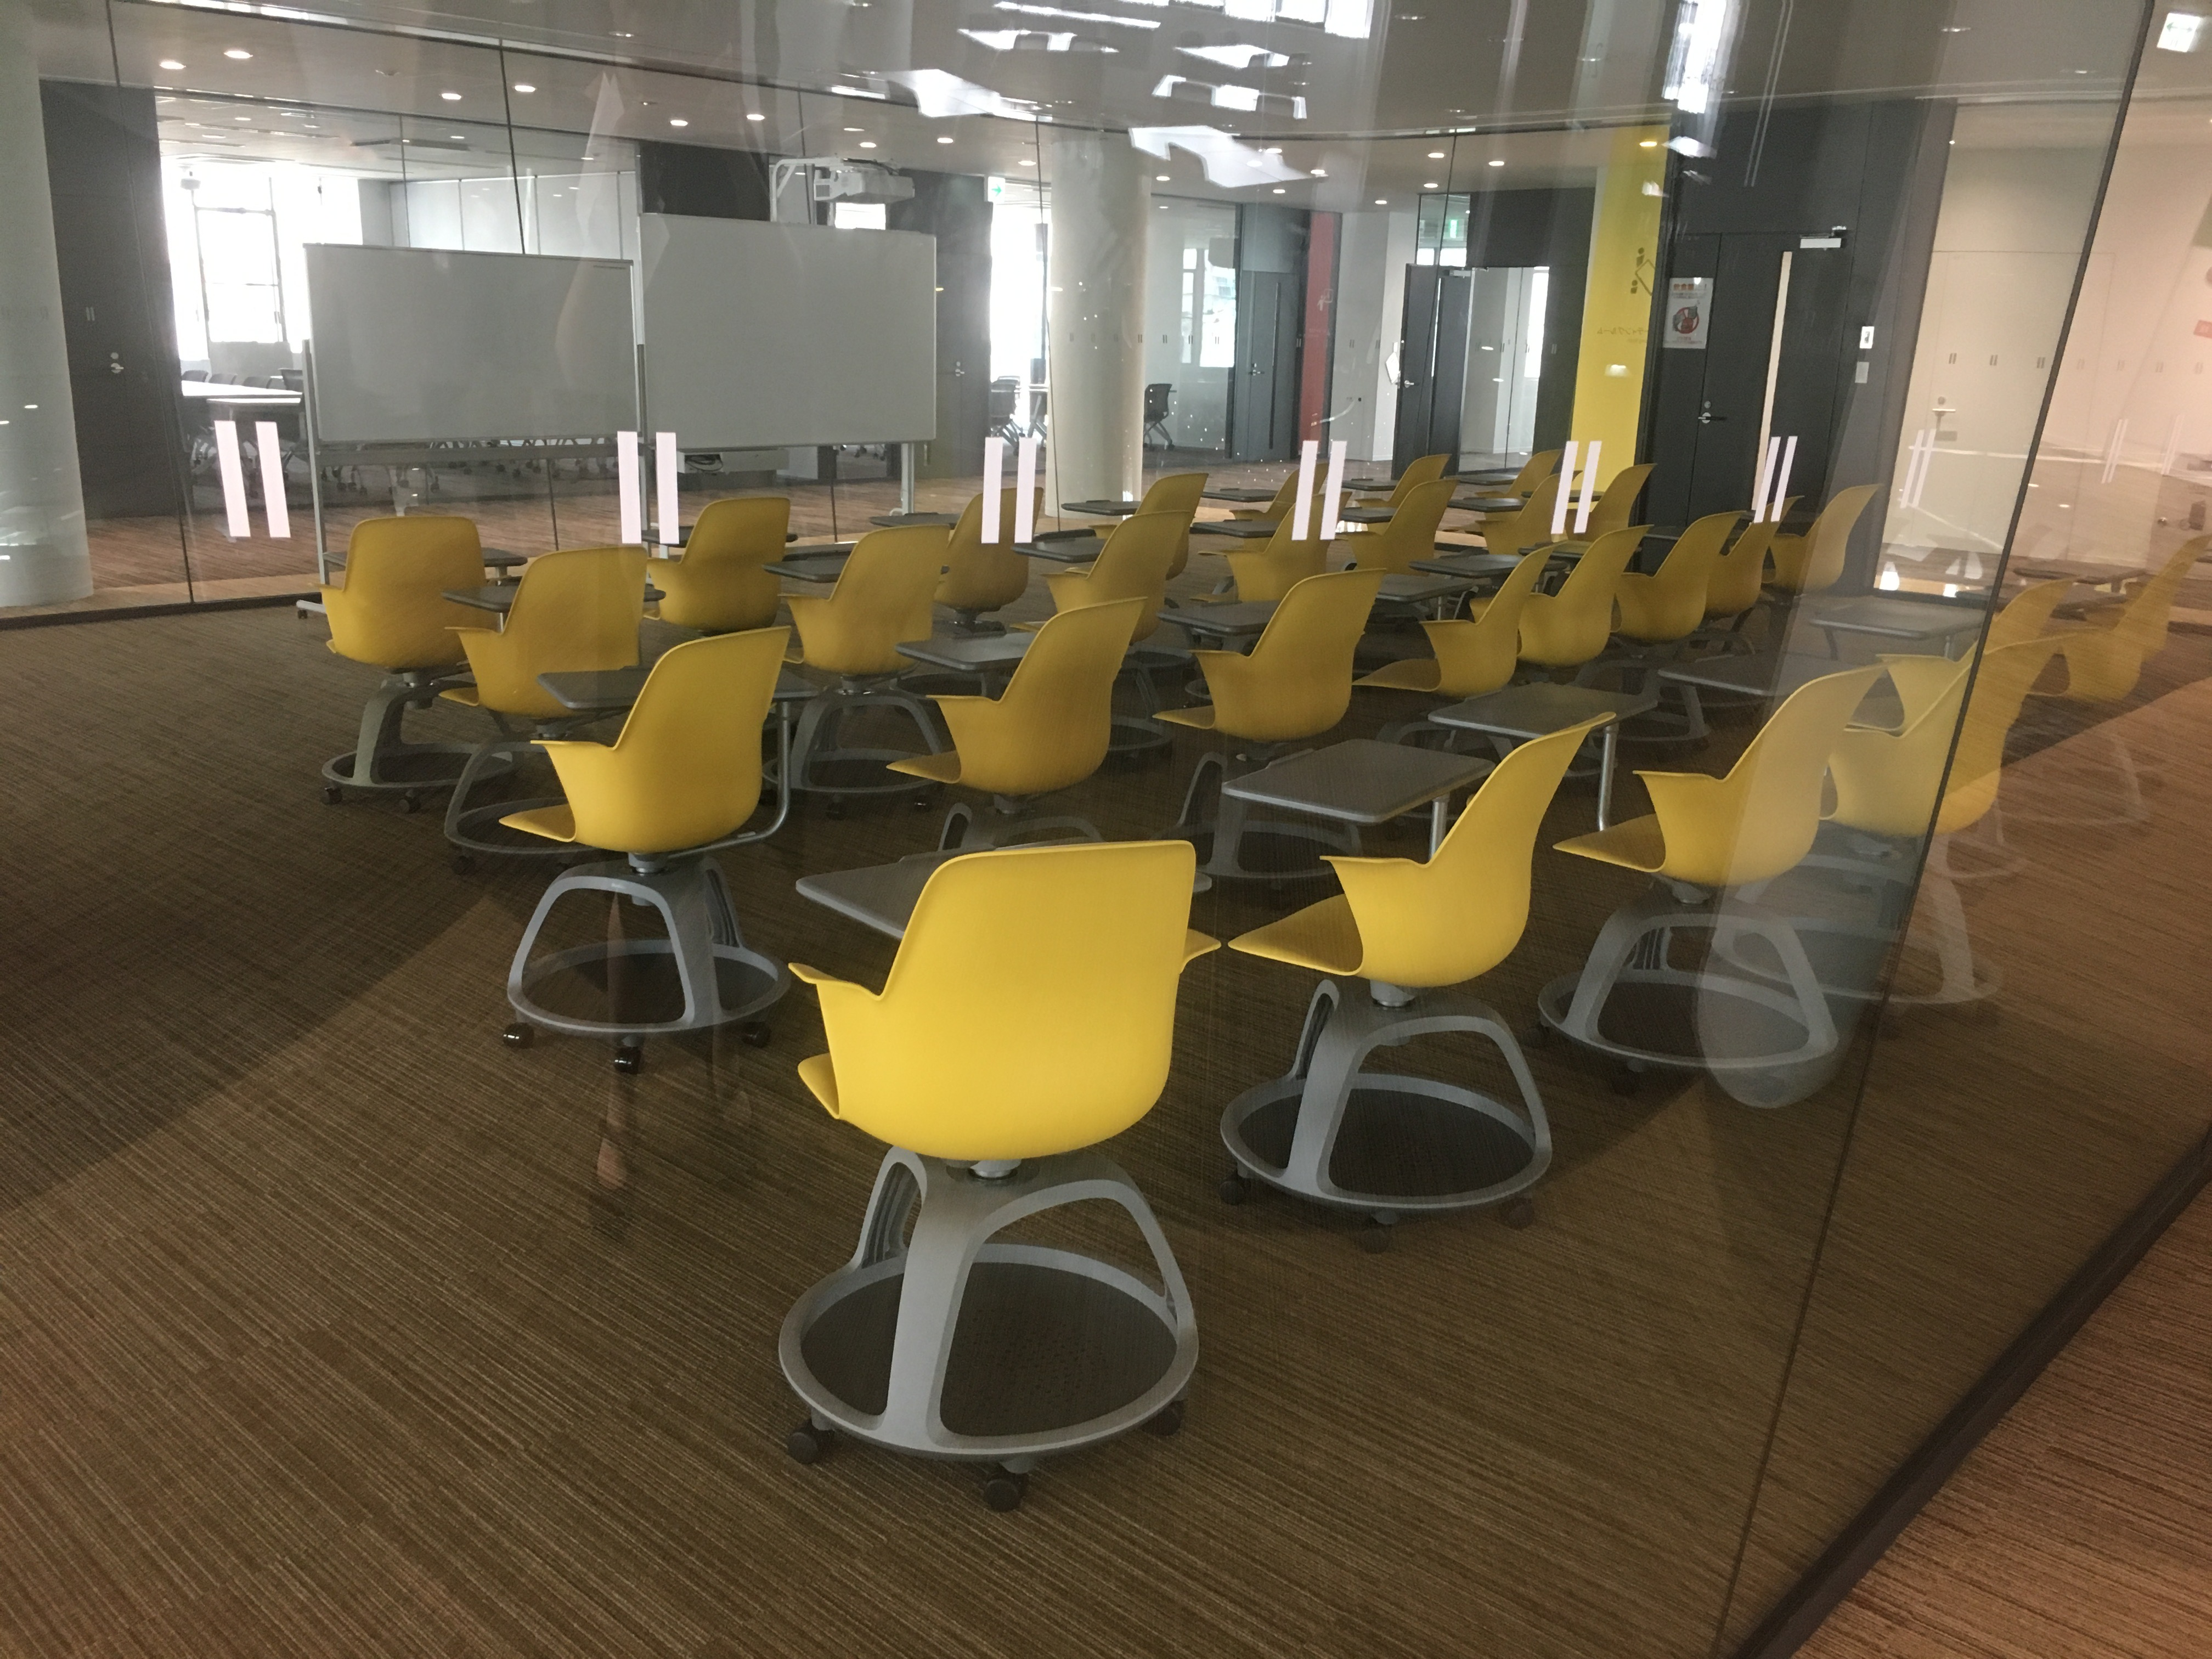 A classroom of yellow chairs that all have round trays attached underneath.